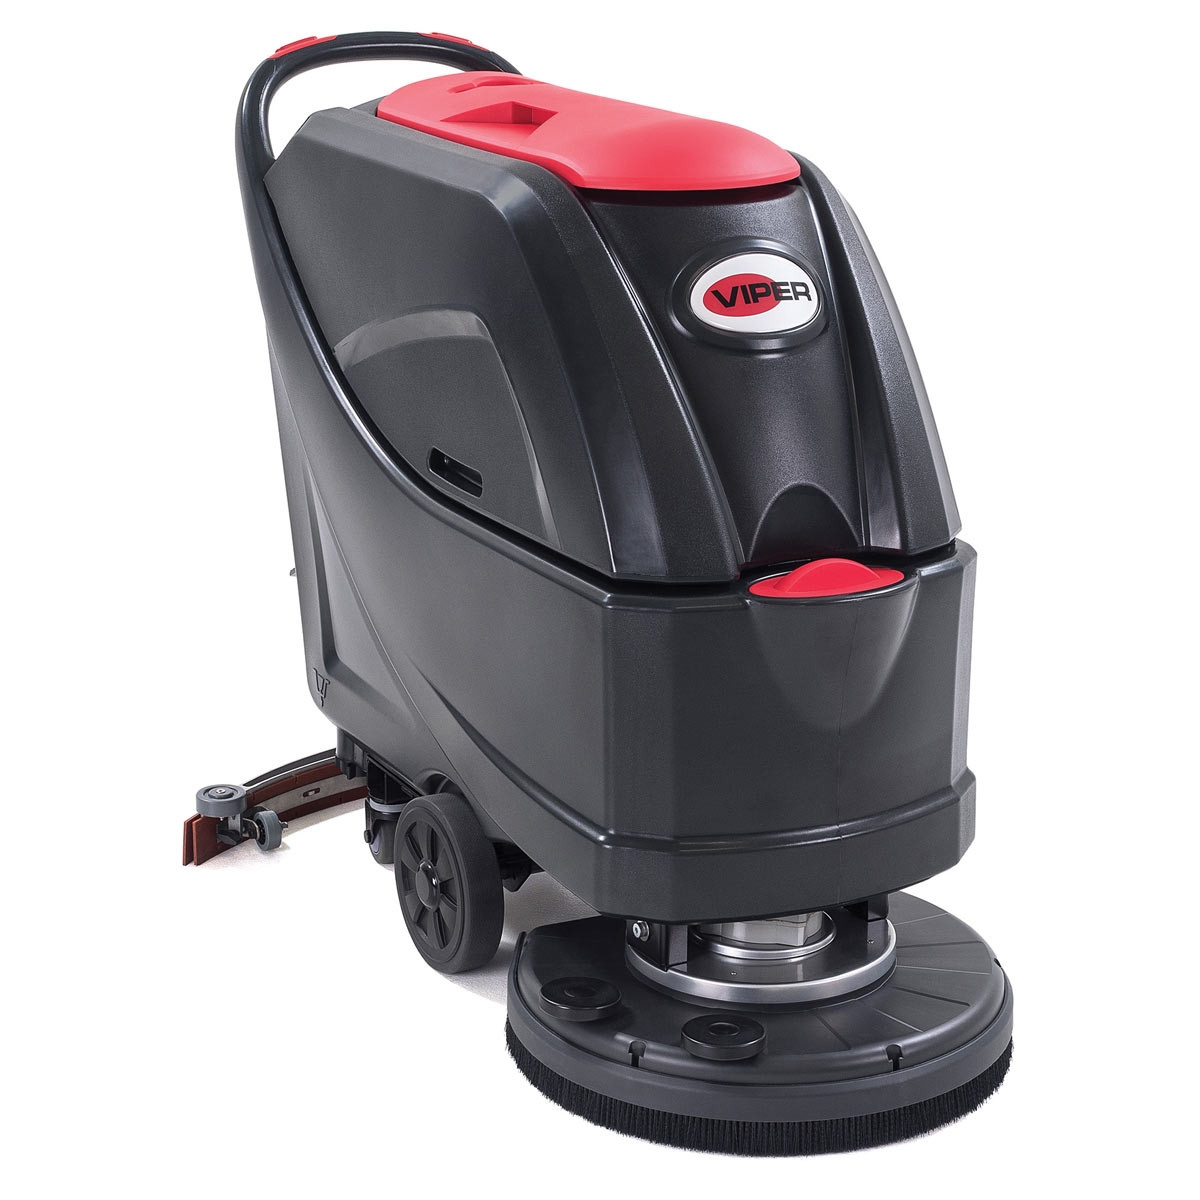 Viper As5160 Automatic Walk Behind 20 Floor Scrubber